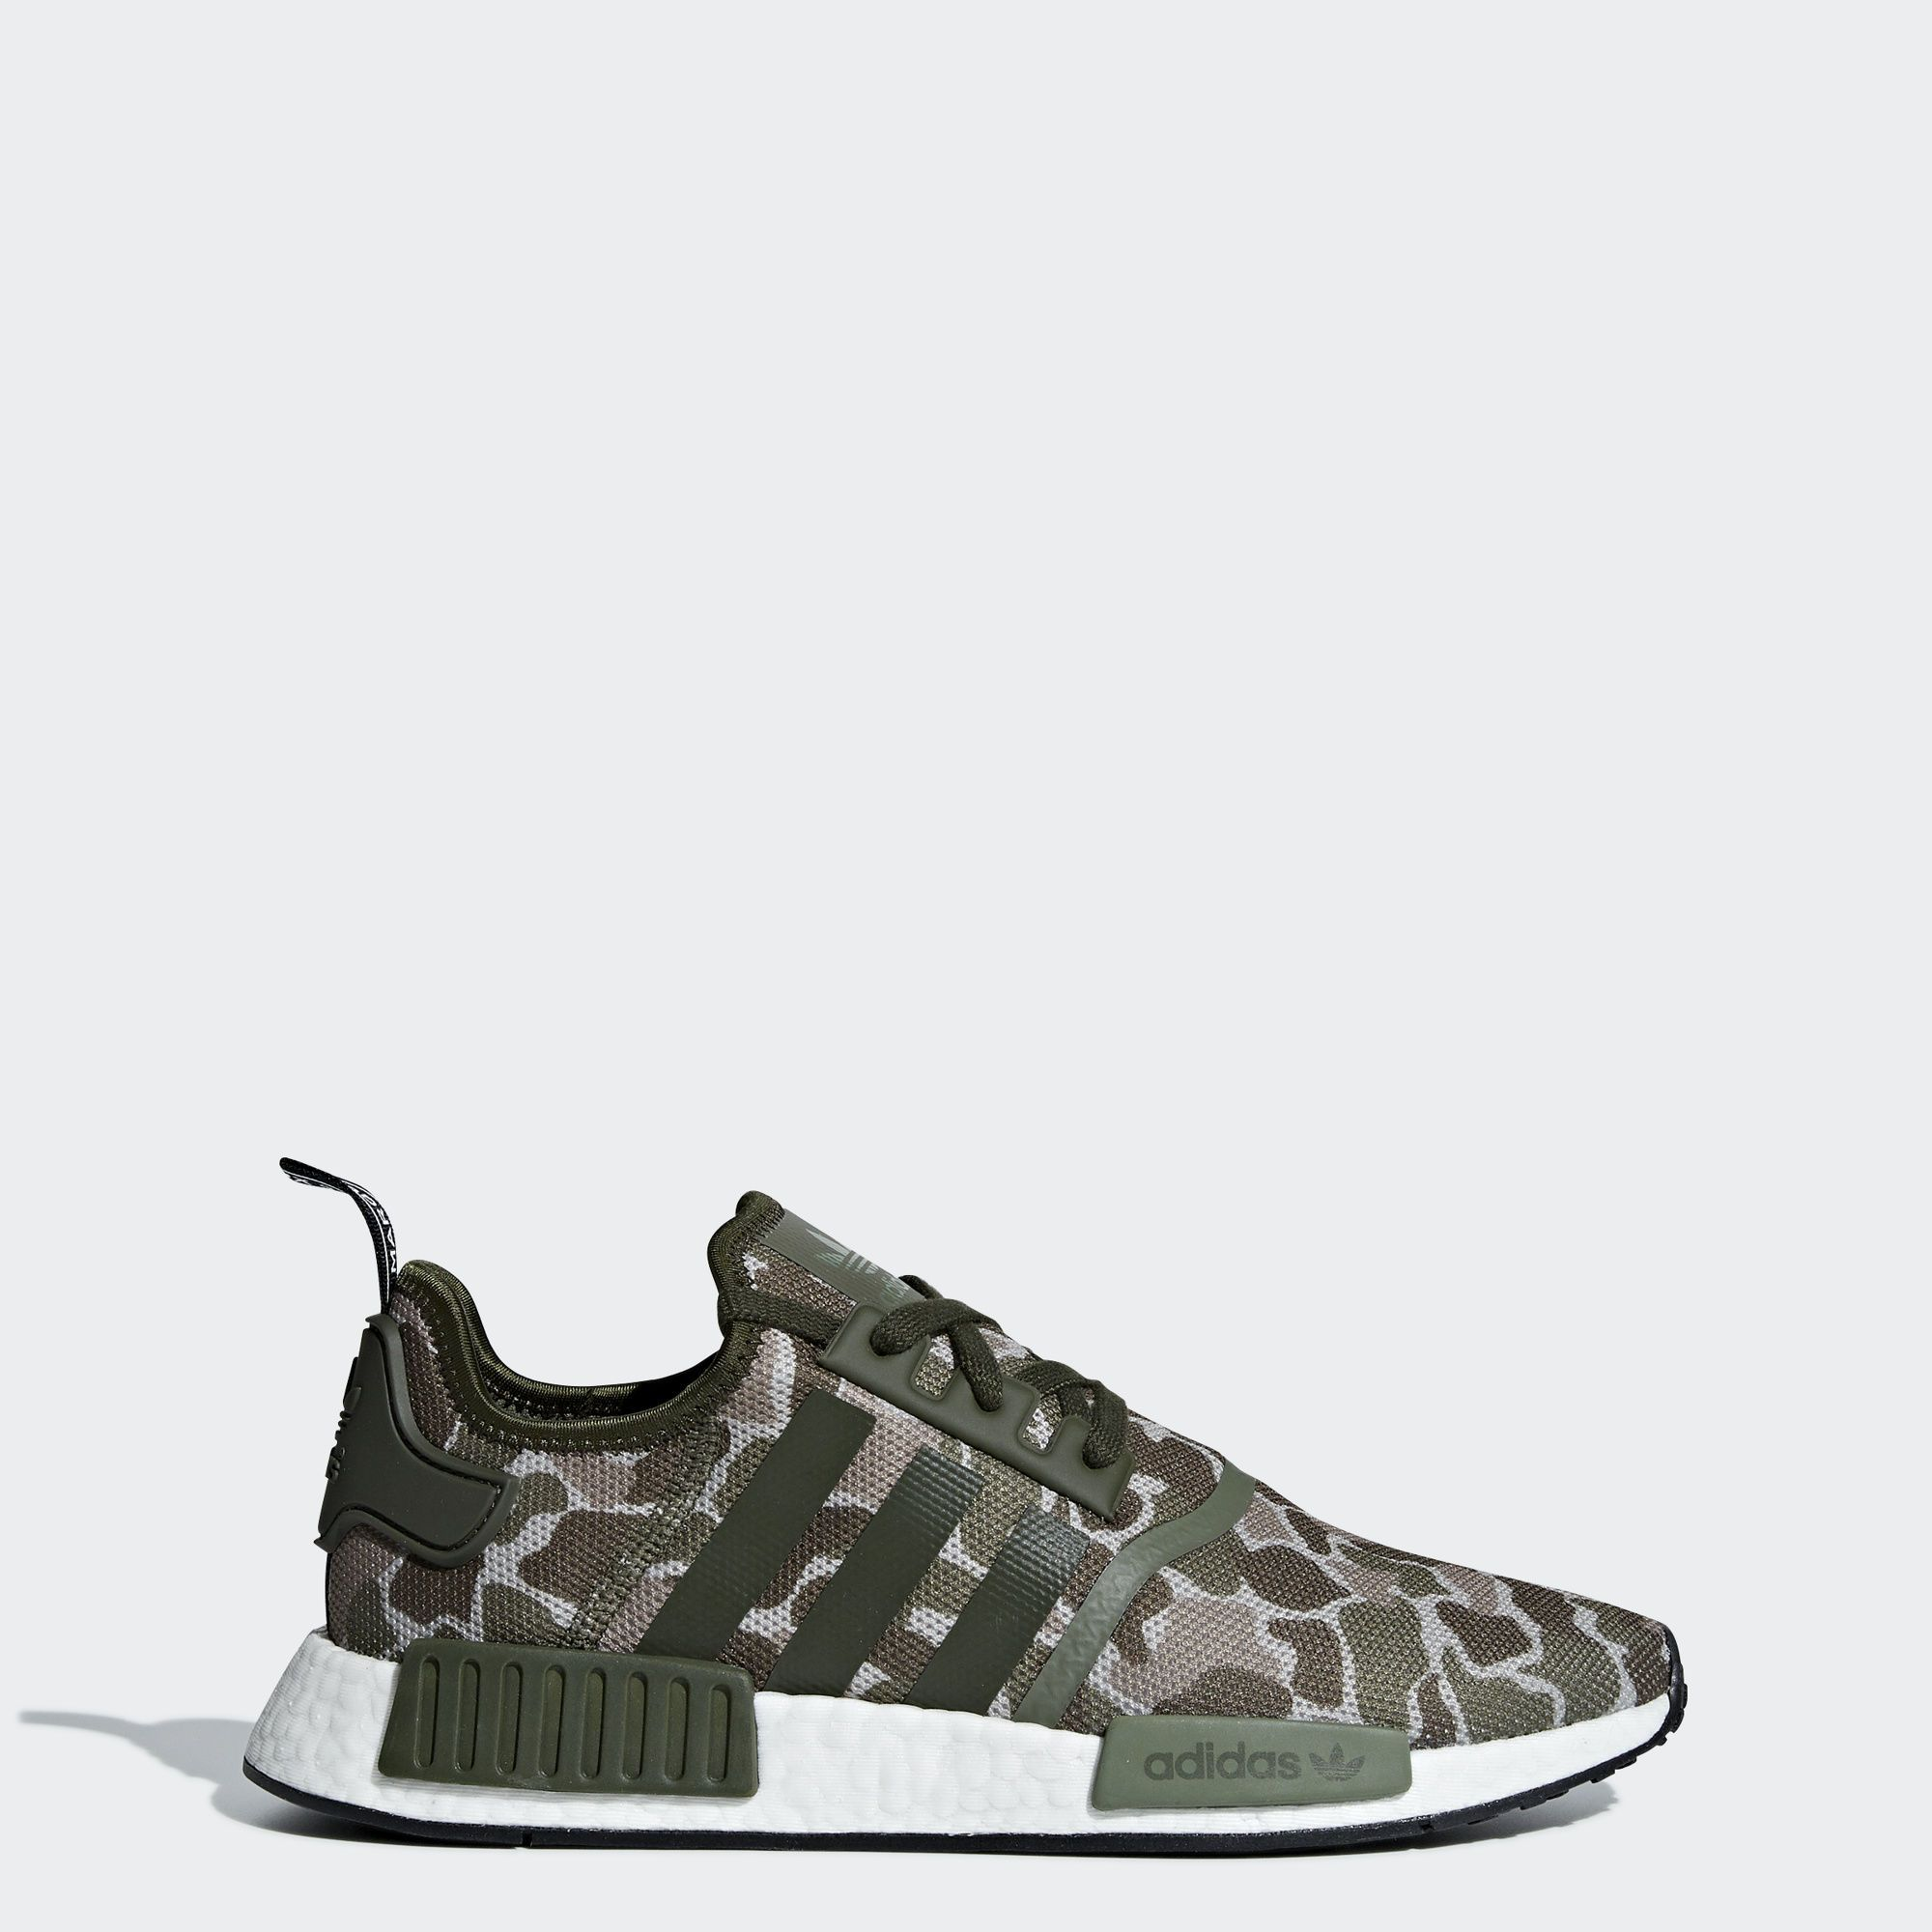 Adidas NMD_R1 Neon Detailed Sneakers Farfetch